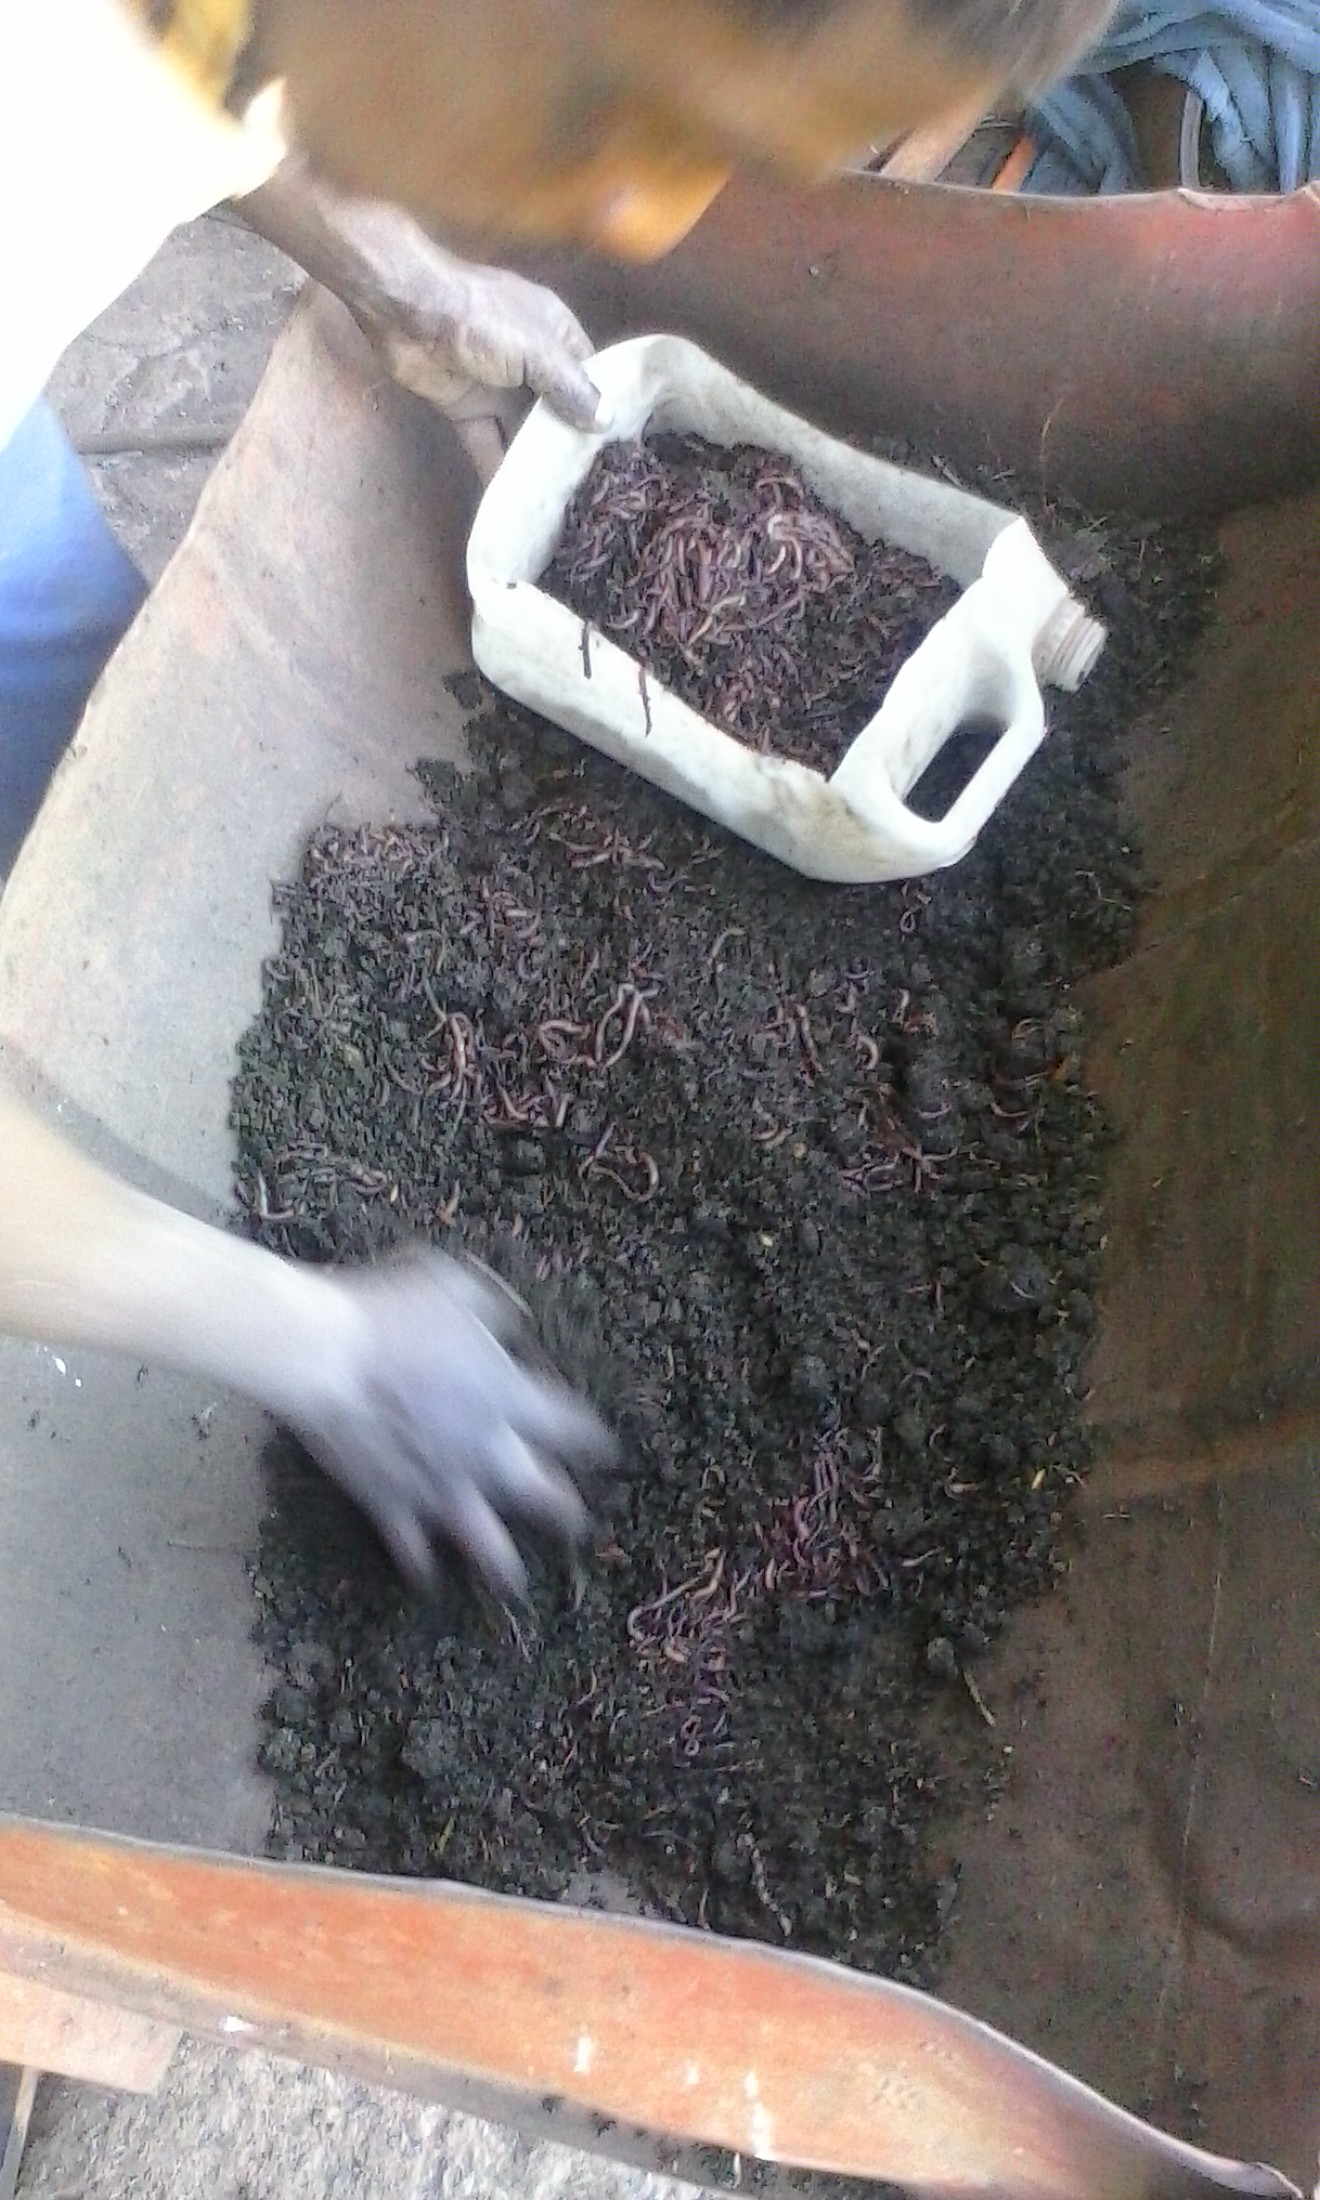 earthworms and vermi compost for sale in bulk